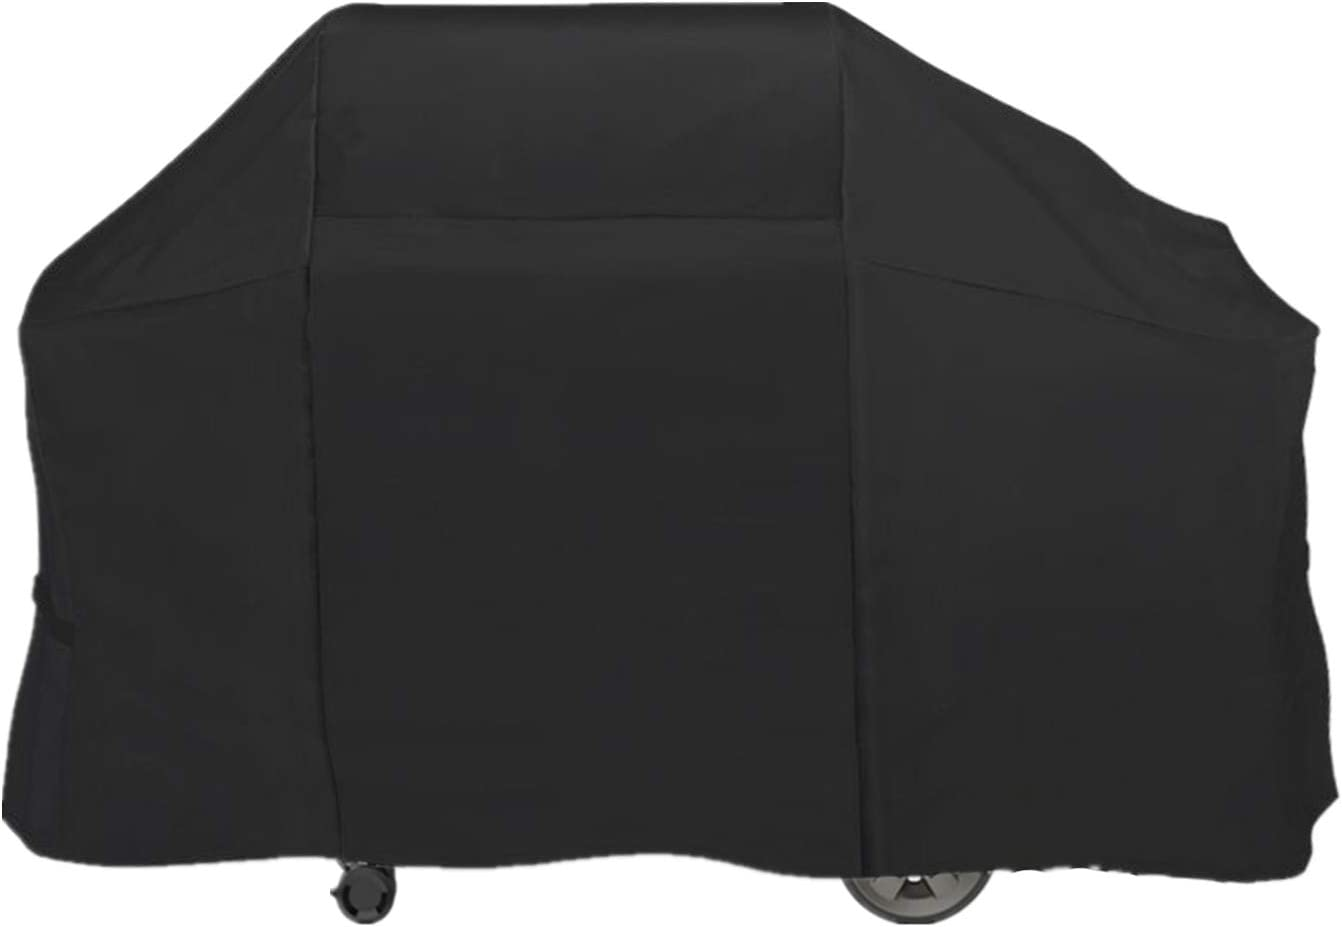 UpStart 40% OFF Cheap Sale Components Selling and selling Gas Grill Cover Replace Heavy Waterproof Duty